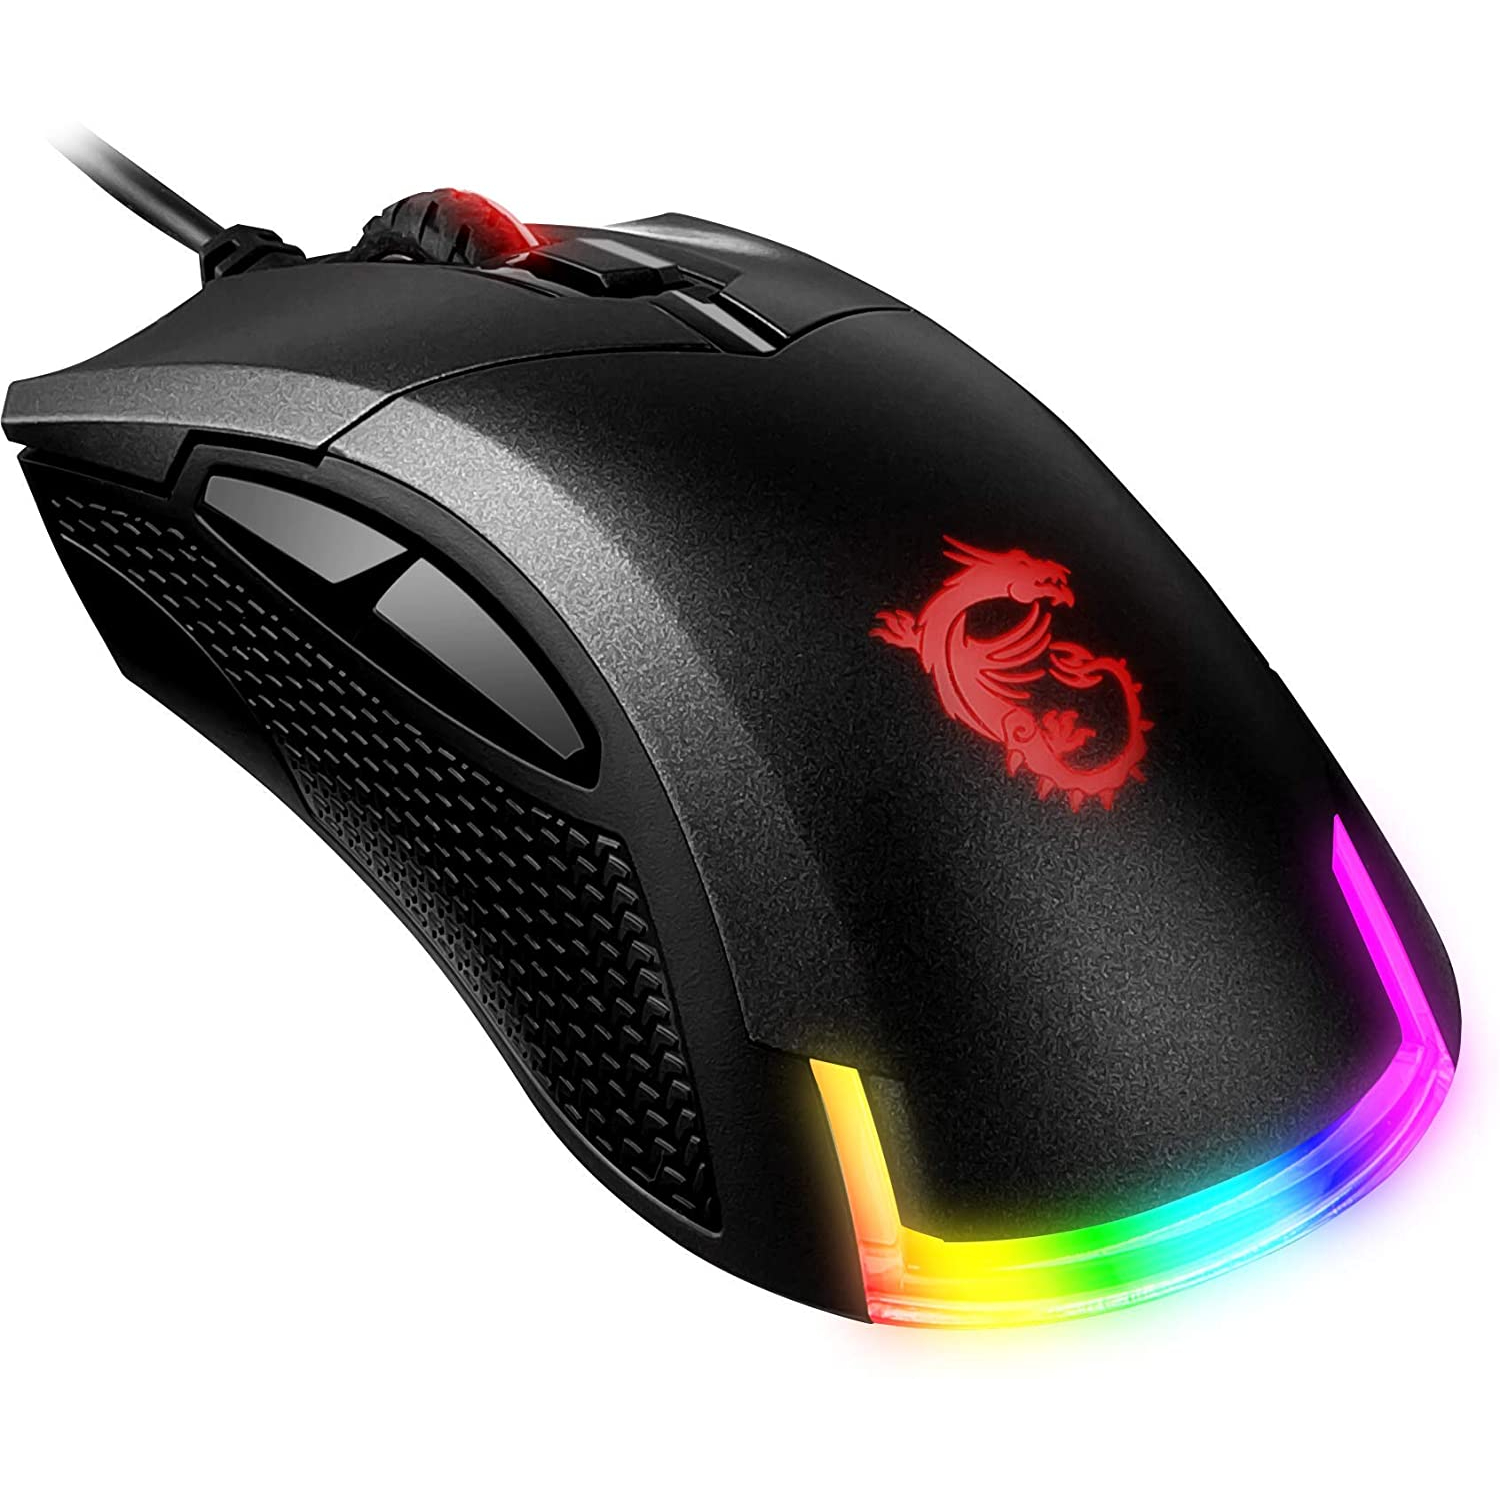 Image of MSI Clutch GM50 Gaming Mouse - Black